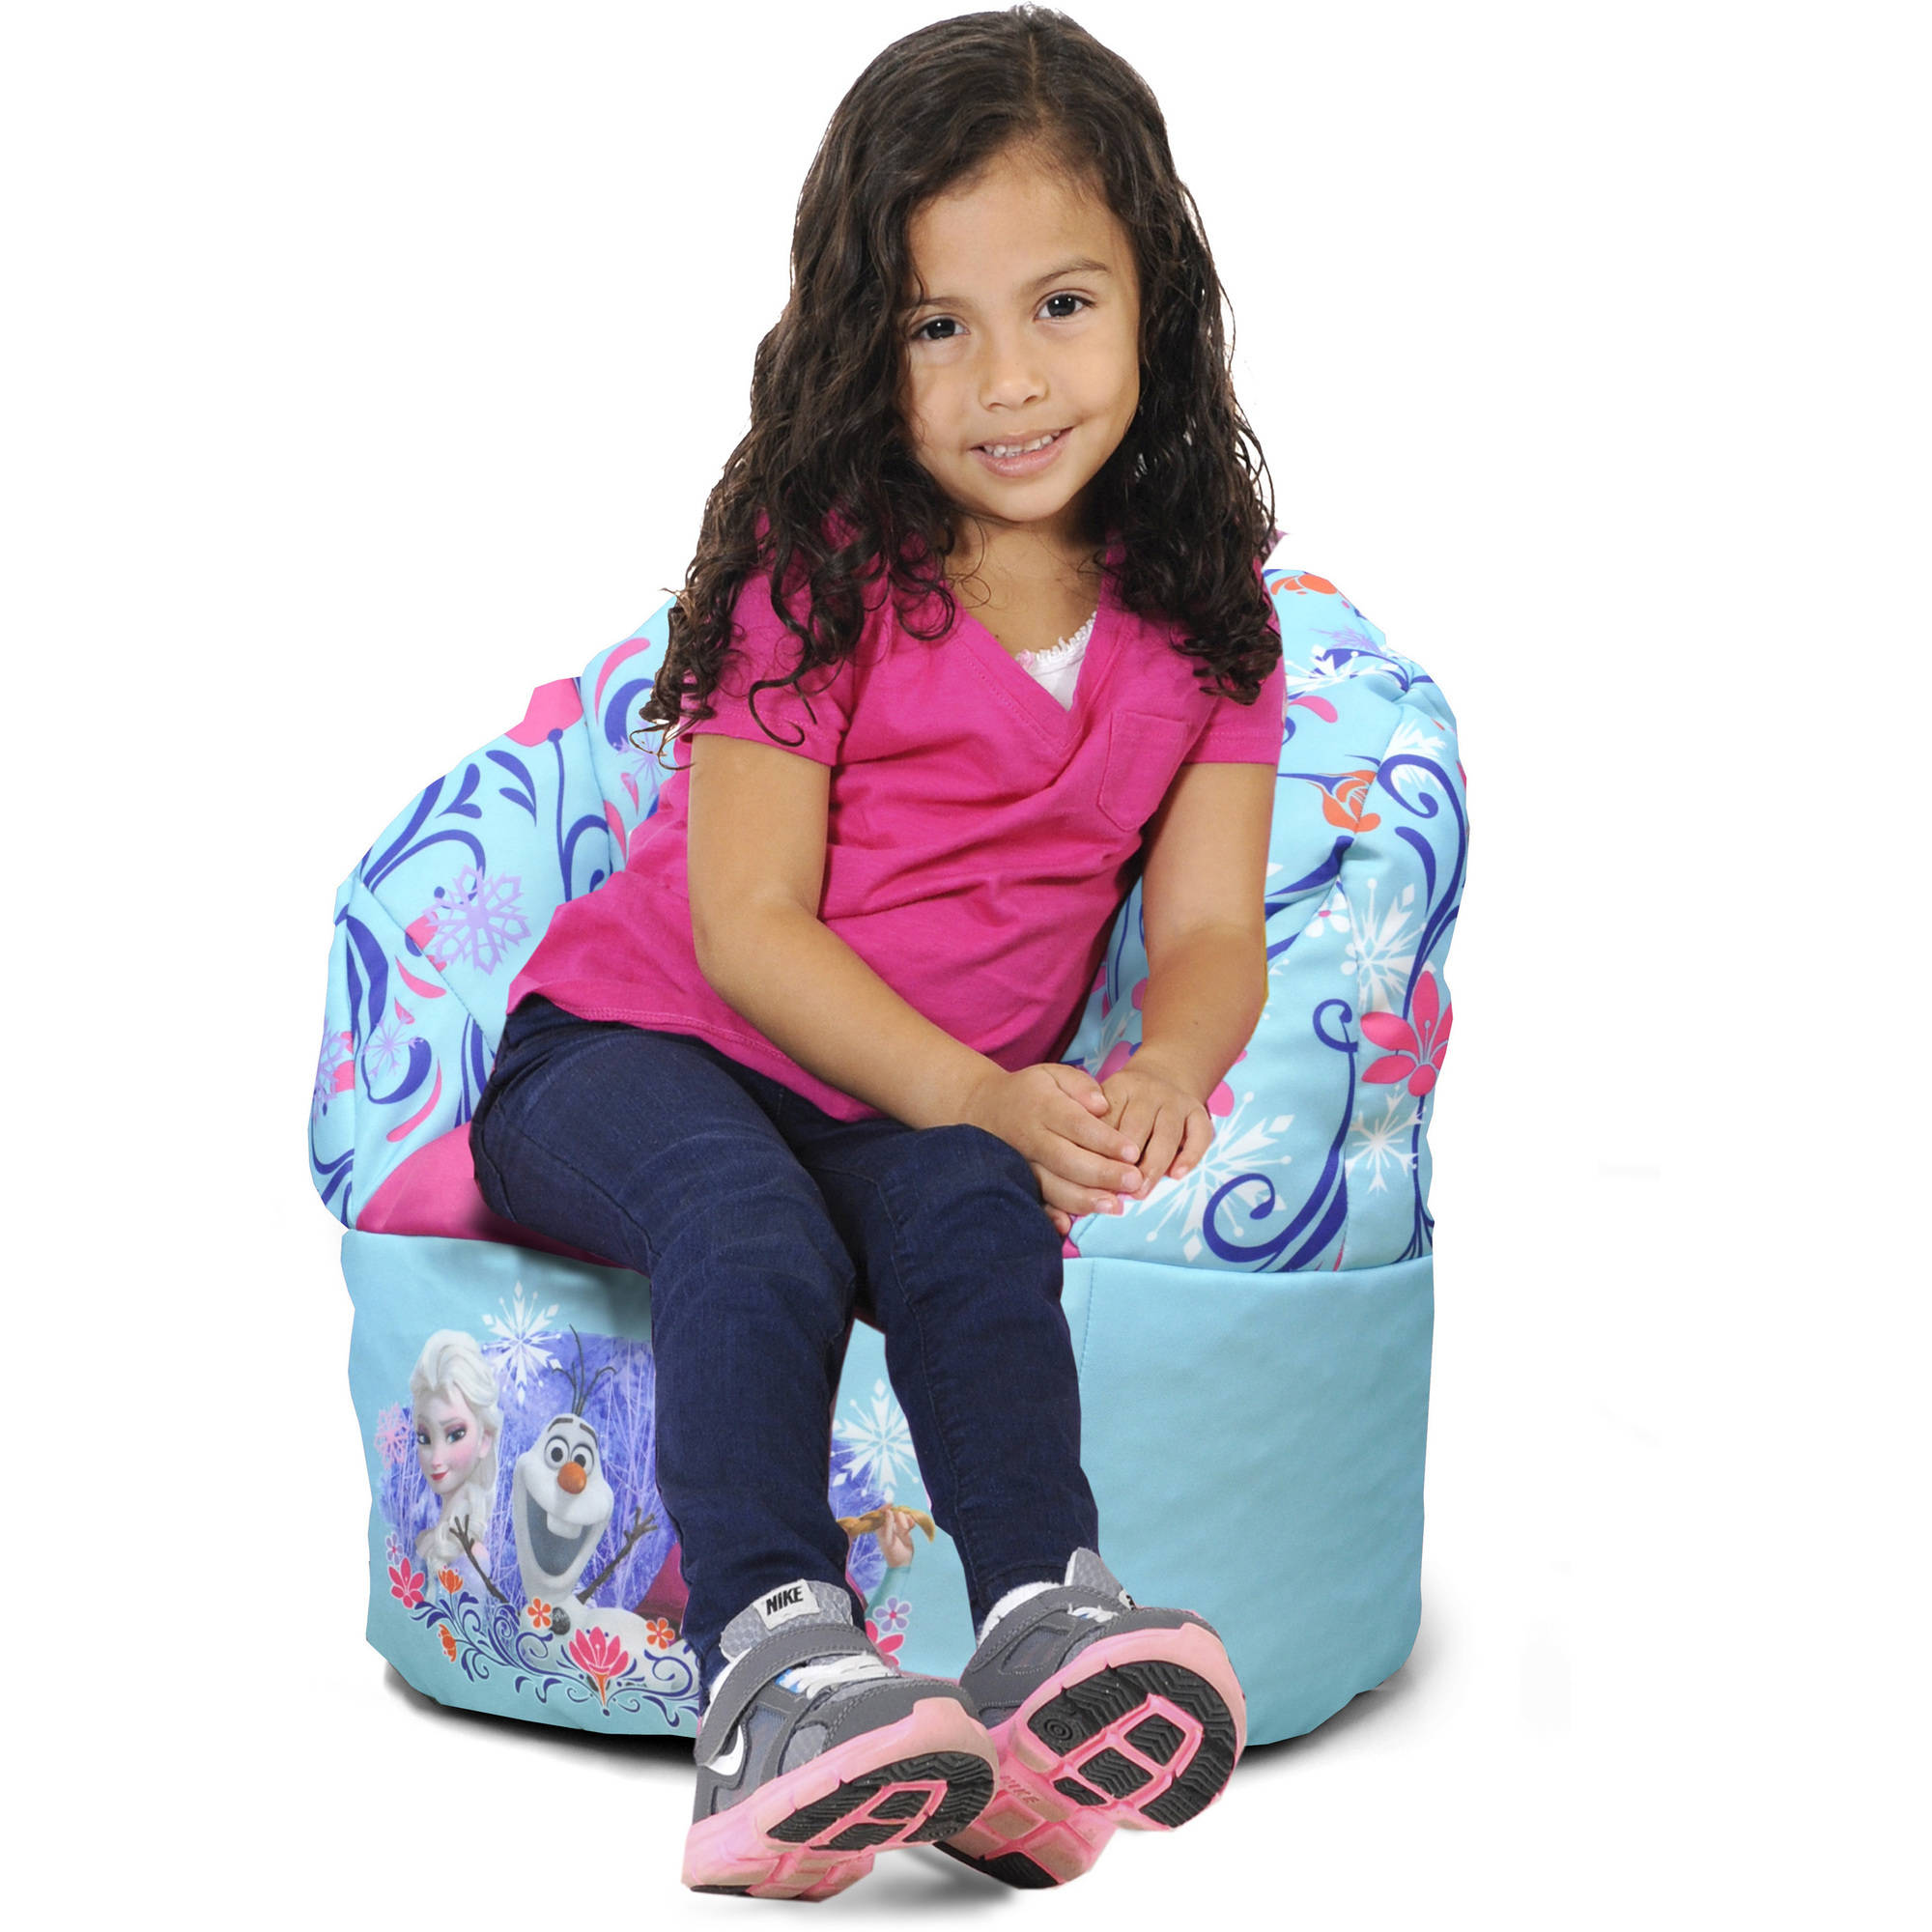 Disney Frozen Mini Bean Bag Chair, Blue